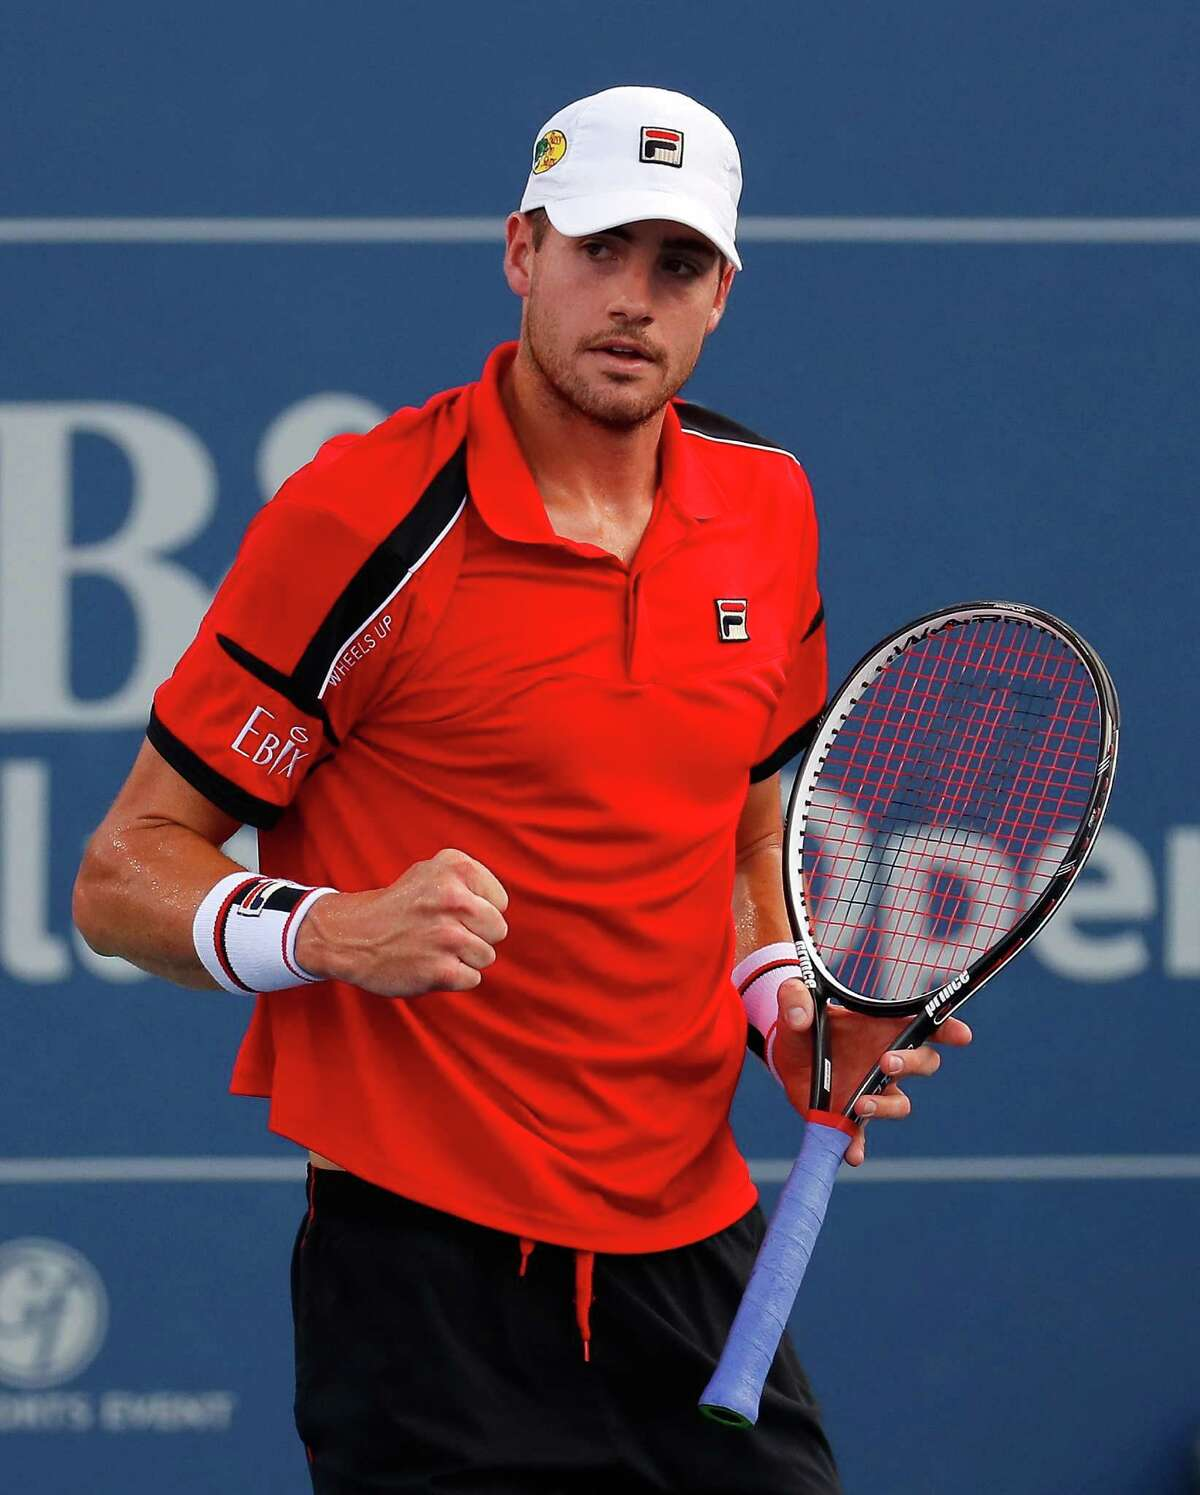 ATLANTA, GA - AUGUST 06: John Isner reacts in the match against Reilly Opelka during the BB&T Atlanta Open at Atlantic Station on August 6, 2016 in Atlanta, Georgia. (Photo by Kevin C. Cox/Getty Images) ORG XMIT: 634833525